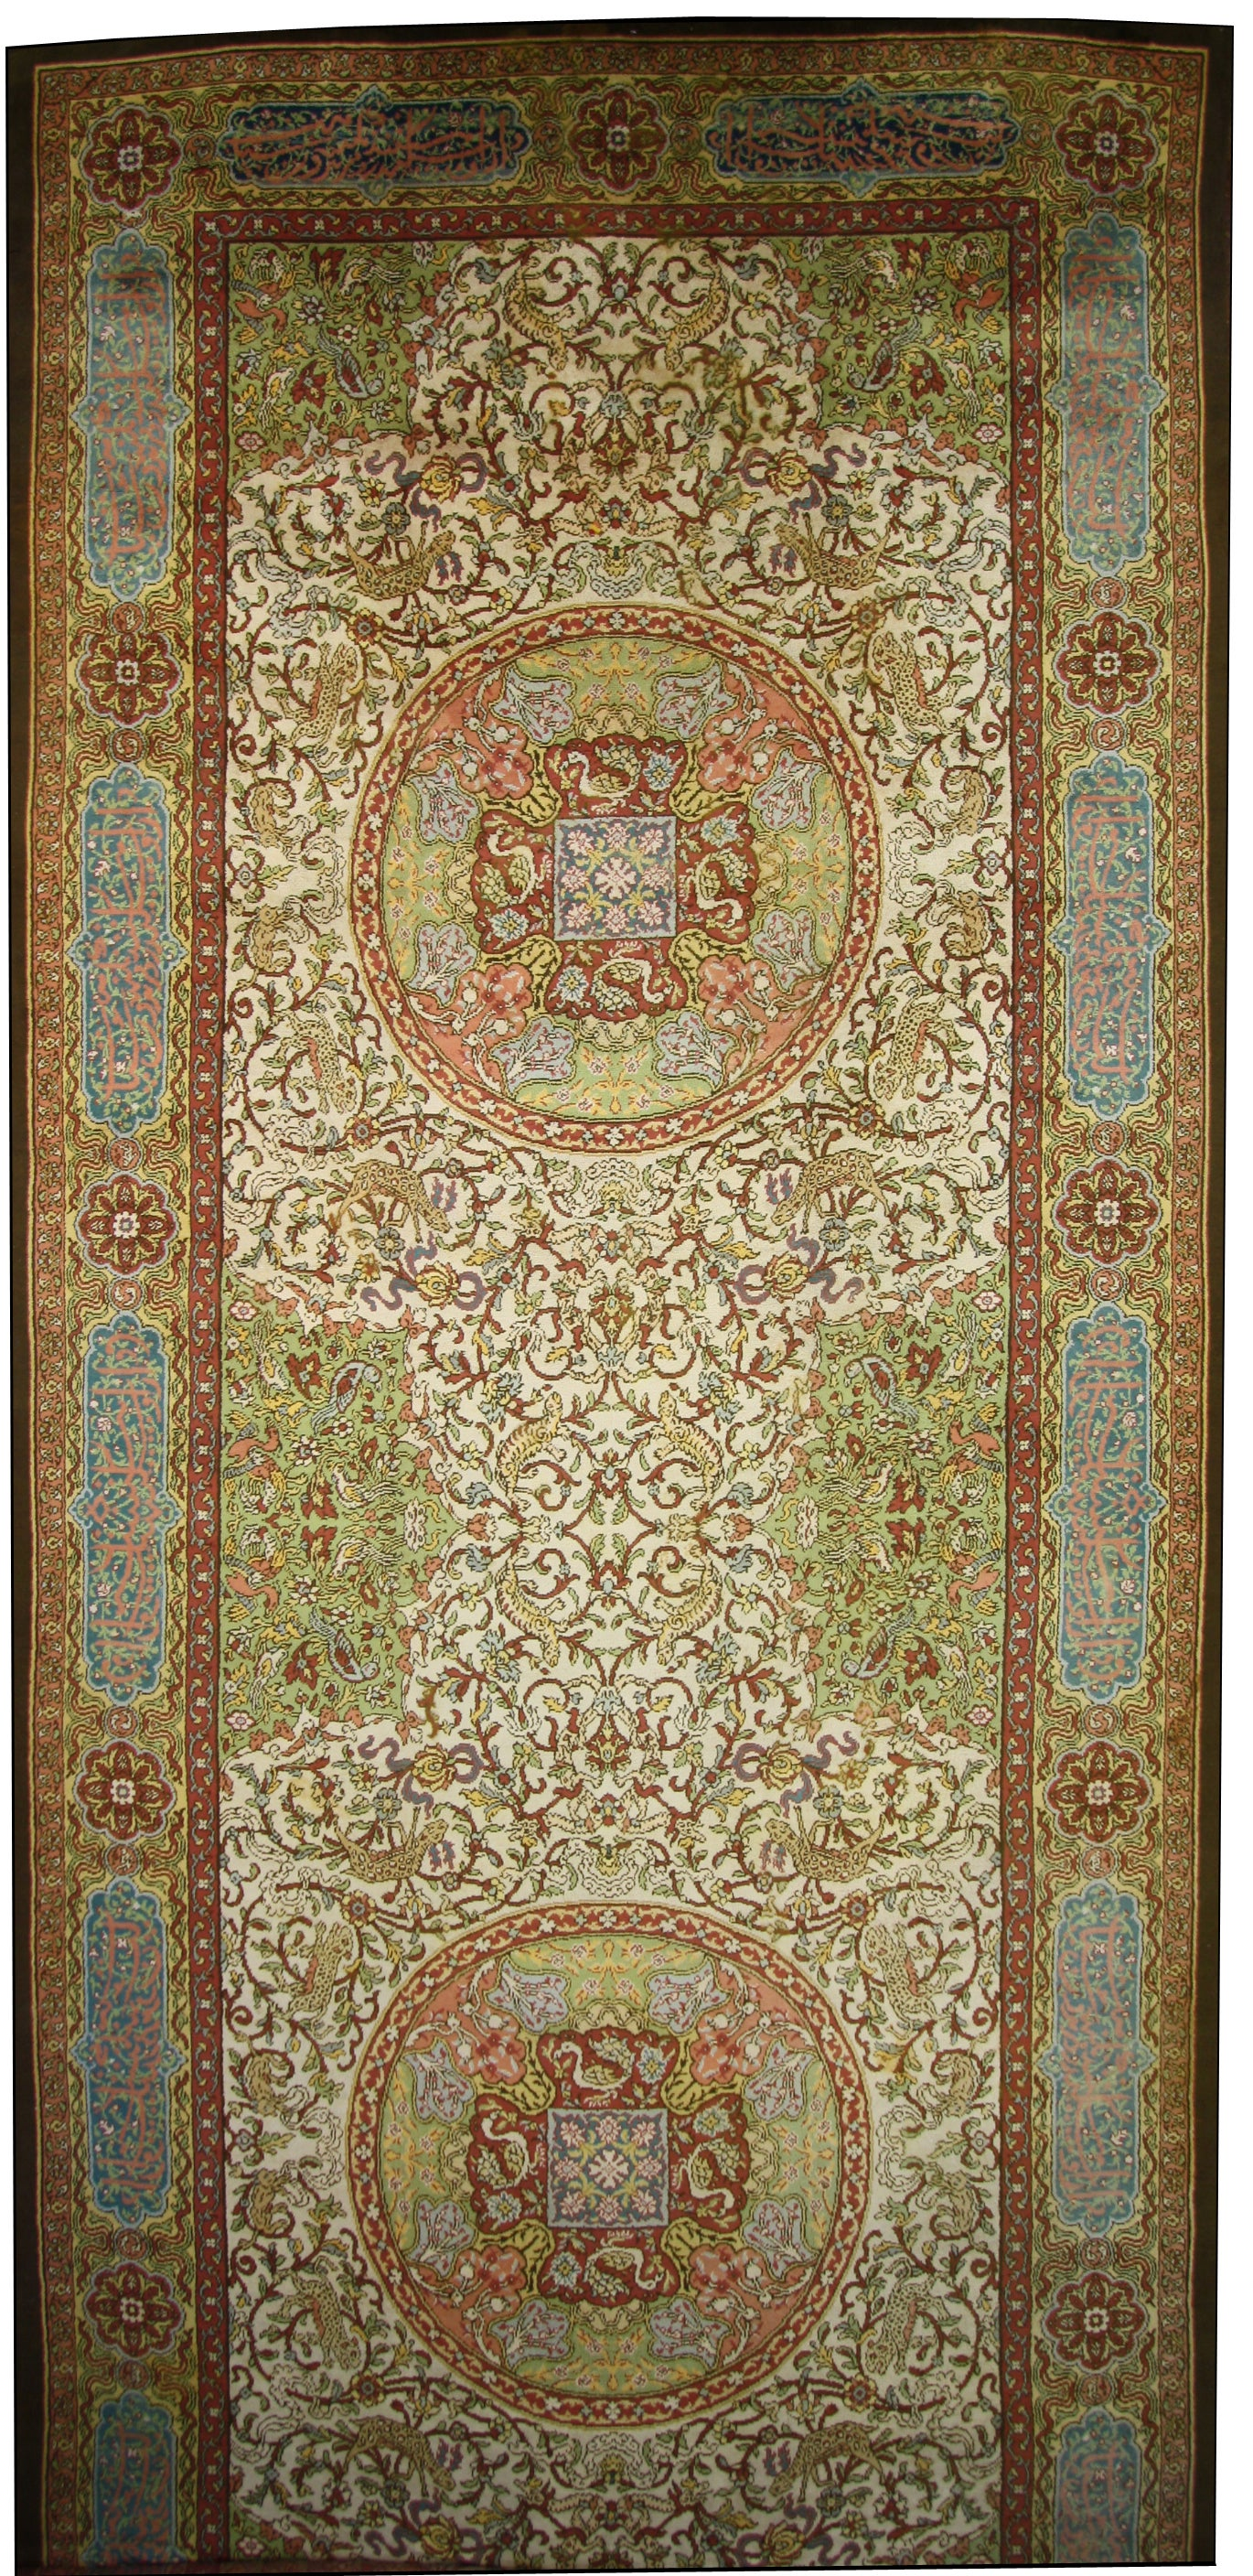 Antique Austrian Savonnerie Palace Size Rug with Aristocratic Medieval Style